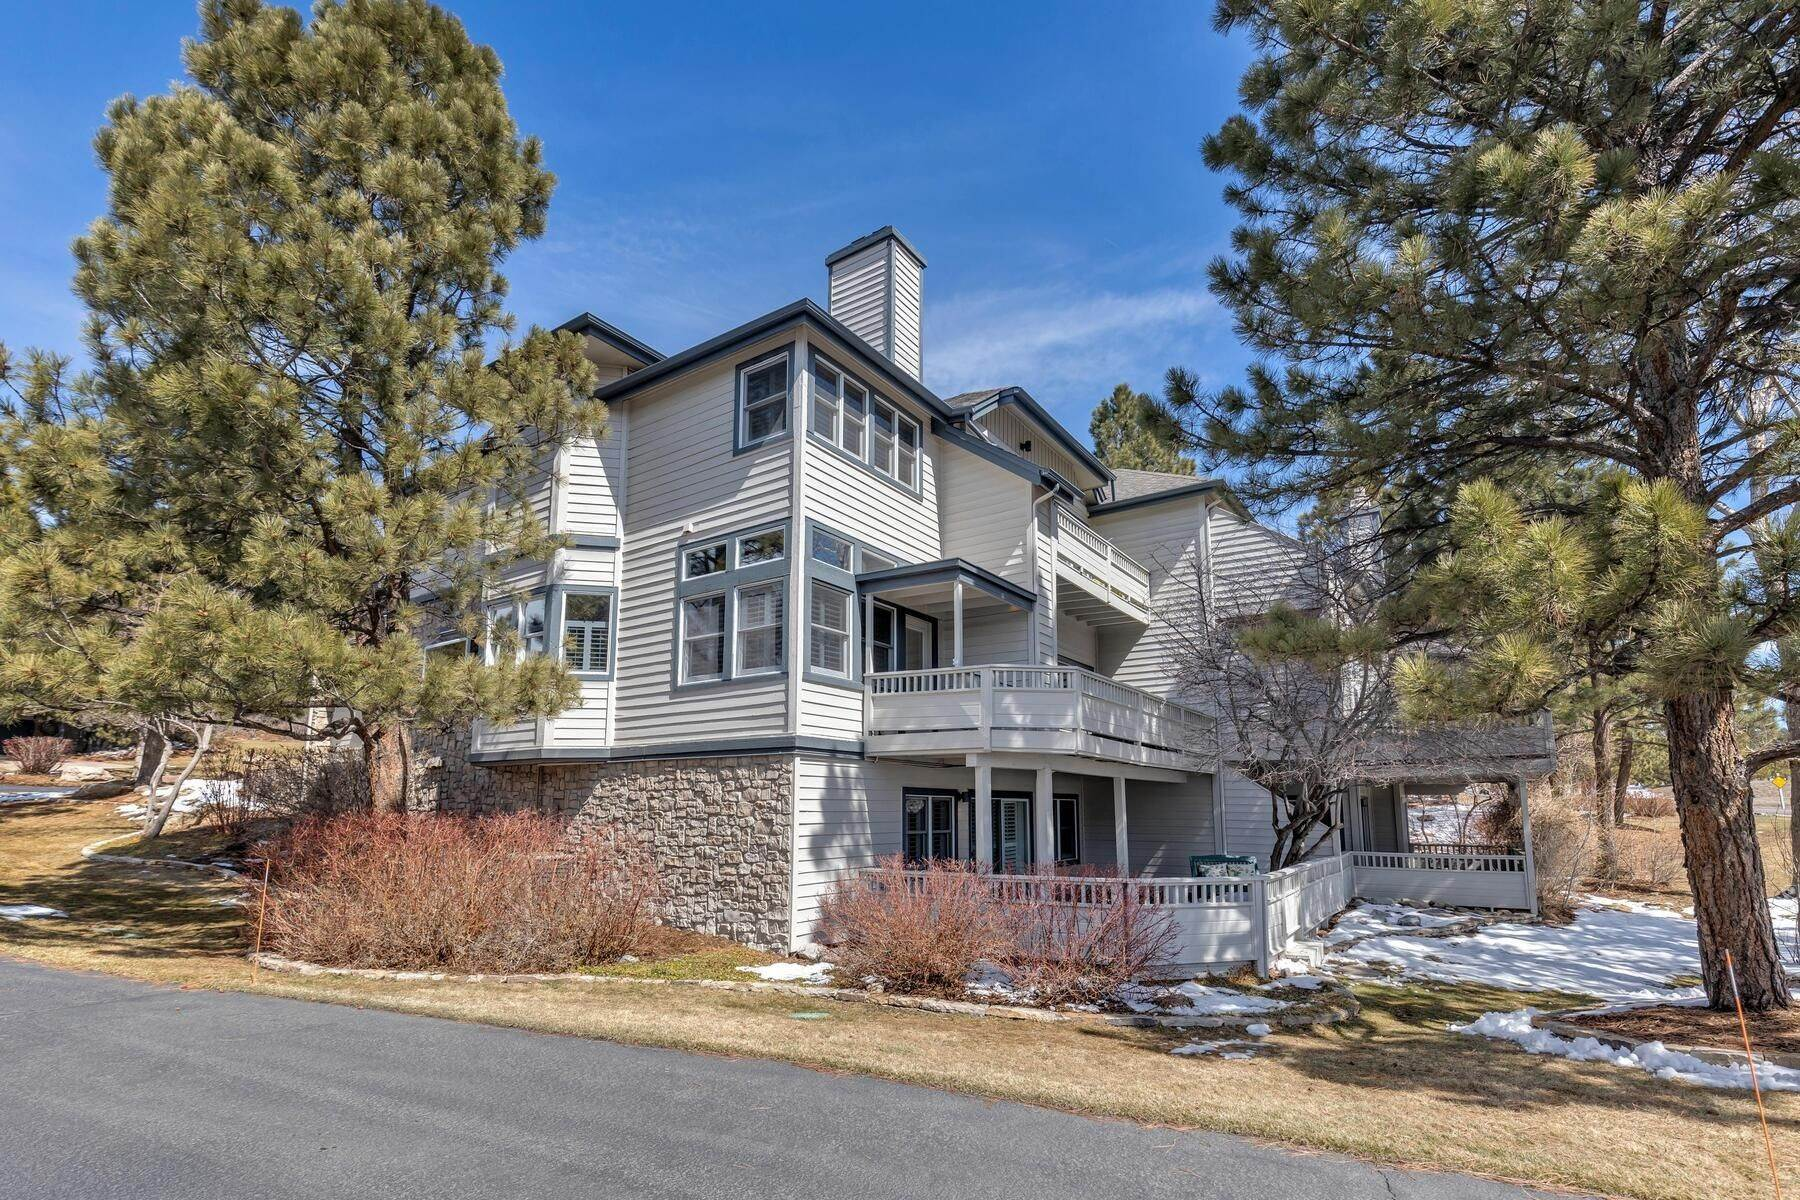 Duplex Homes for Sale at 4220 Morning Star Drive, Castle Rock, Co, 80108 4220 Morning Star Drive Castle Rock, Colorado 80108 United States